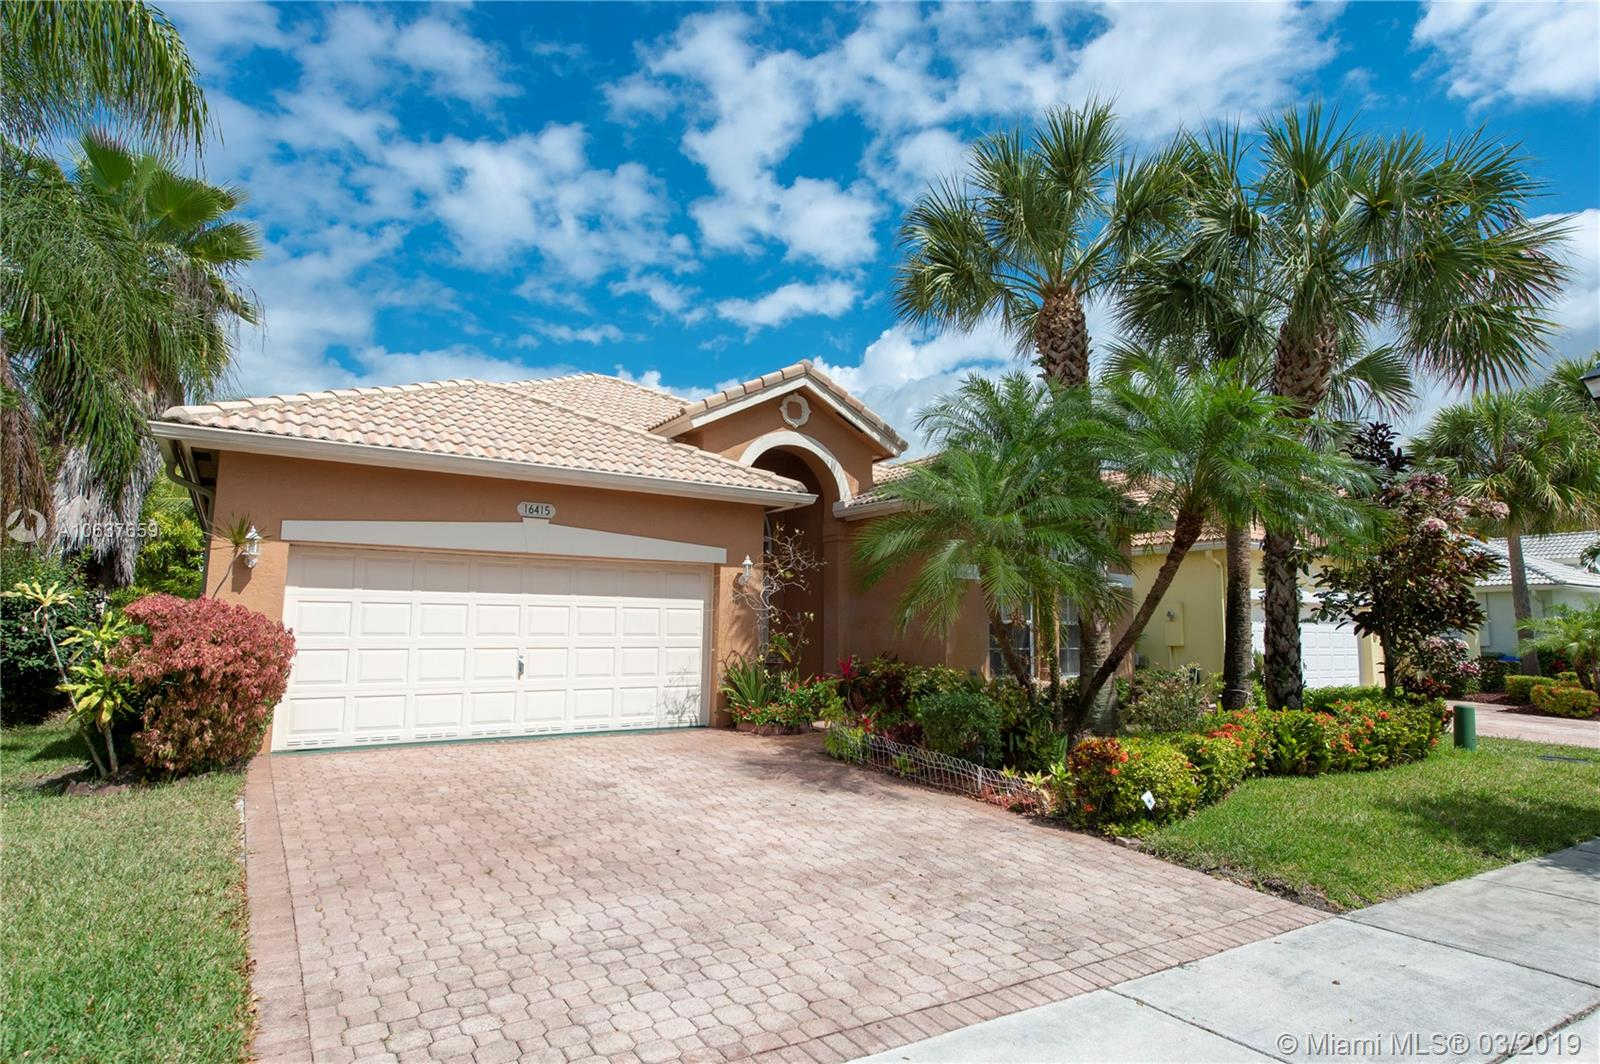 16415 SW 1st Ct, Pembroke Pines, FL 33027 now has a new price of $395,000!